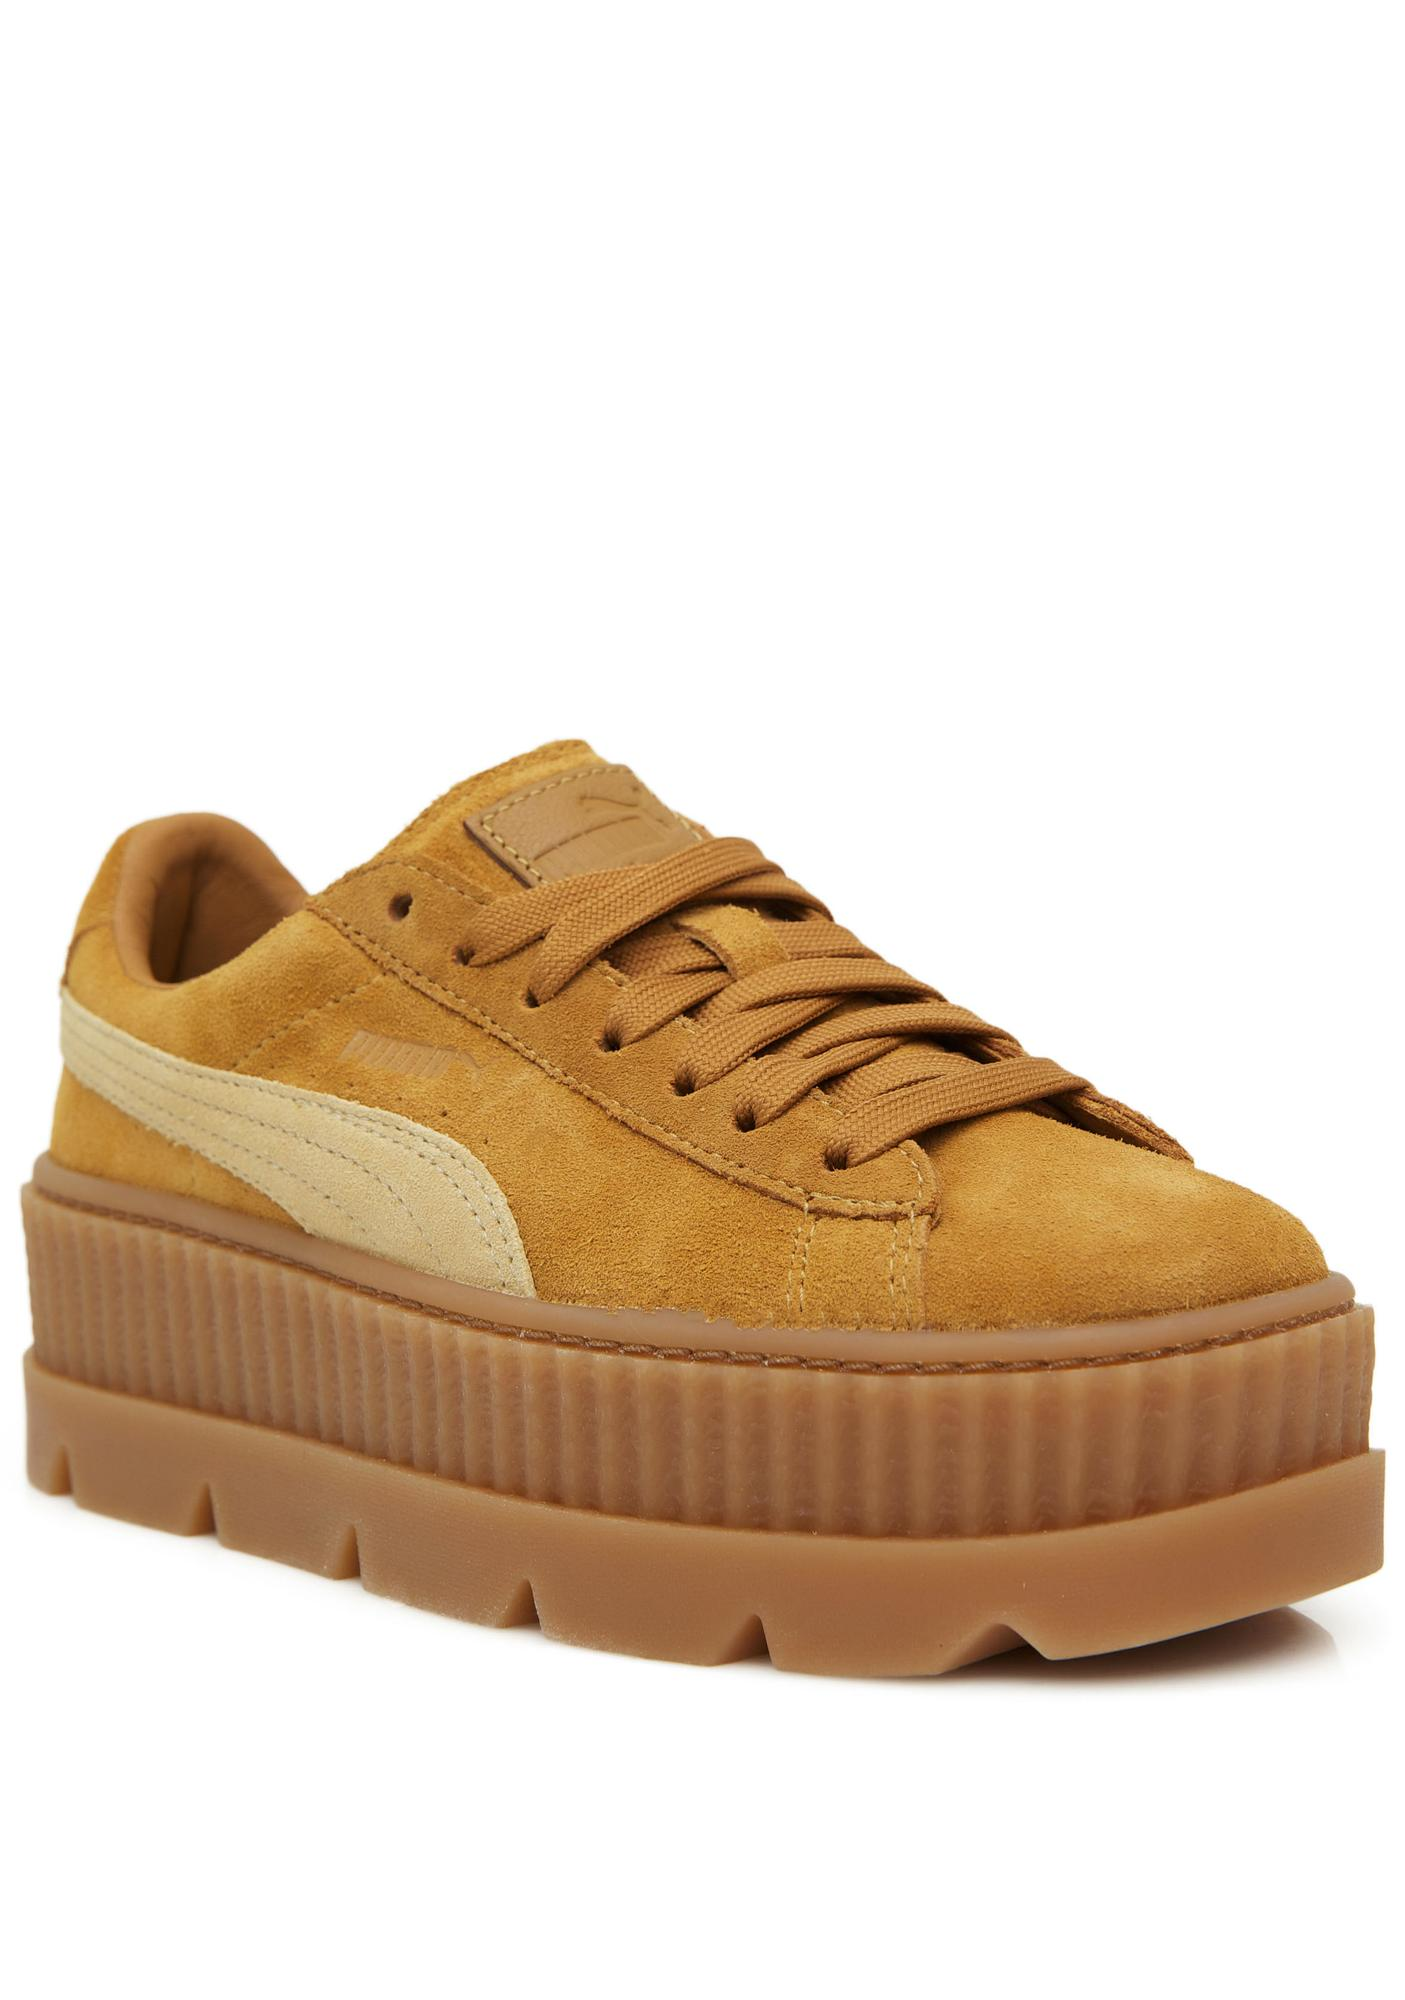 pretty nice 76d85 ead06 FENTY PUMA by Rihanna Cleated Suede Creepers